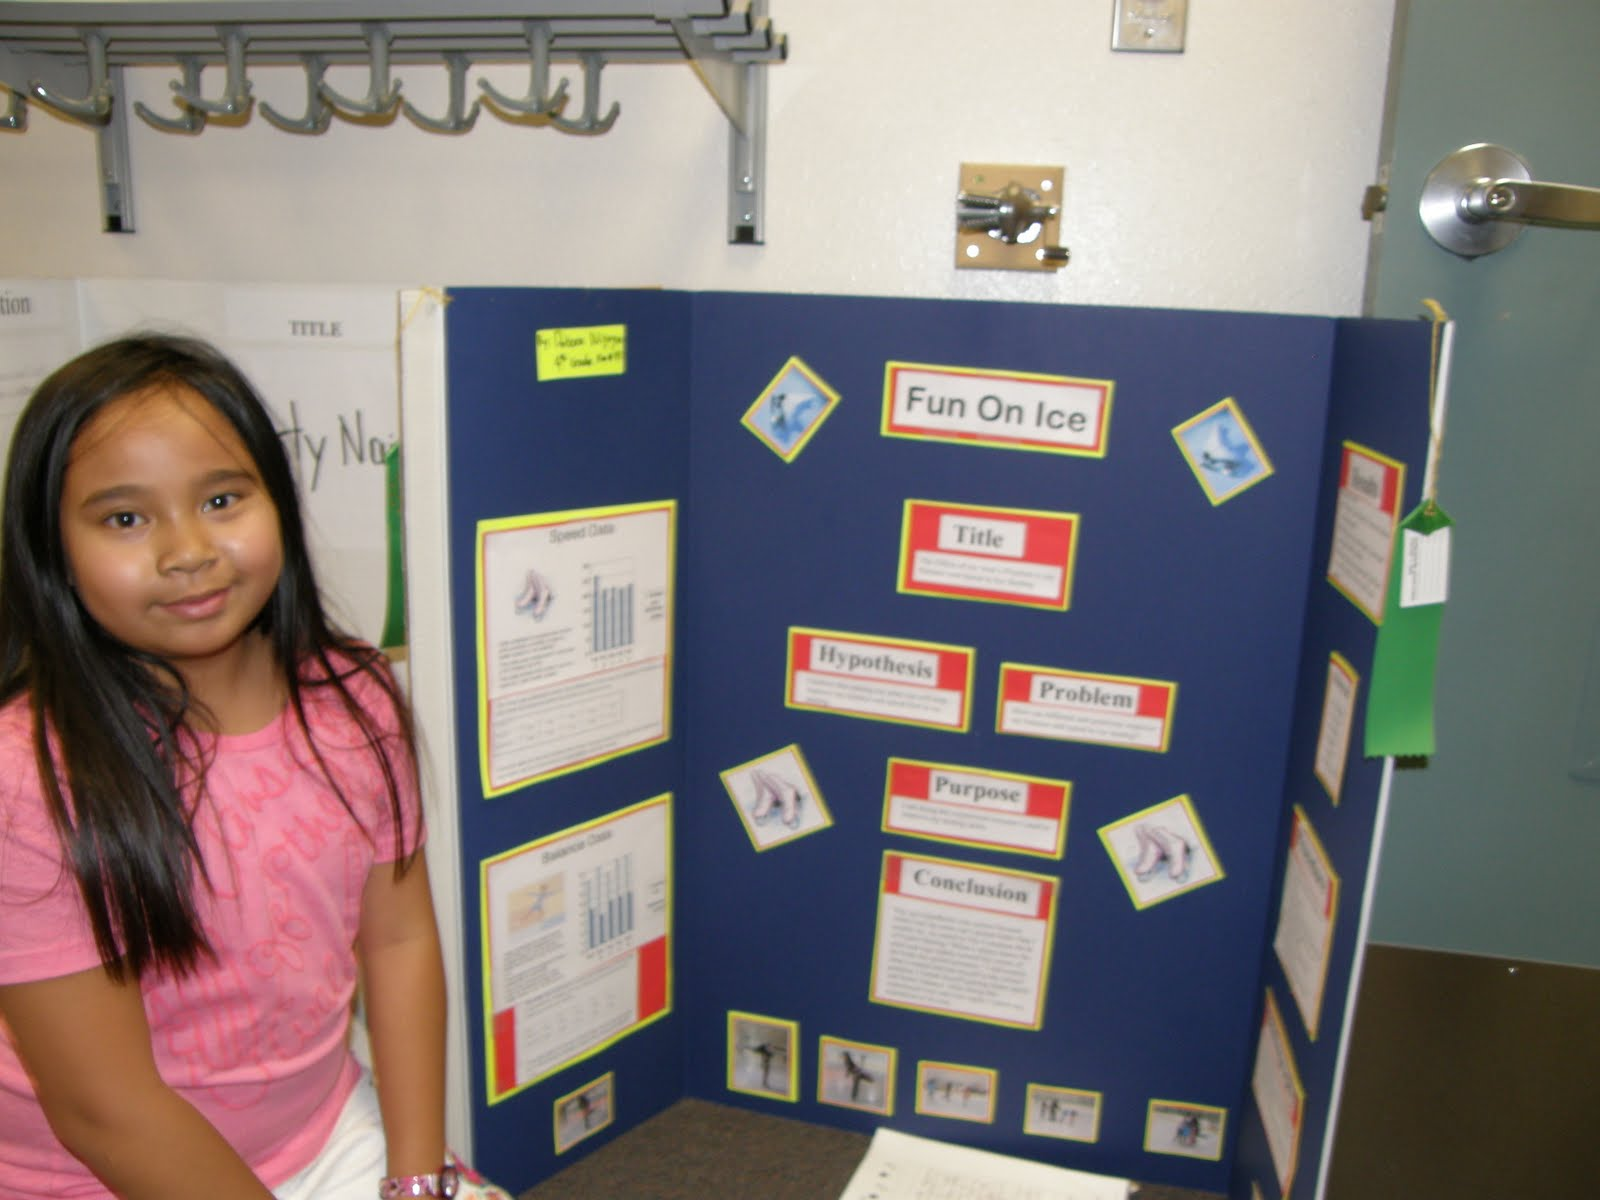 science fair projects world Find easy science experiments, watch experiment videos, and get science fair ideas from science bob.